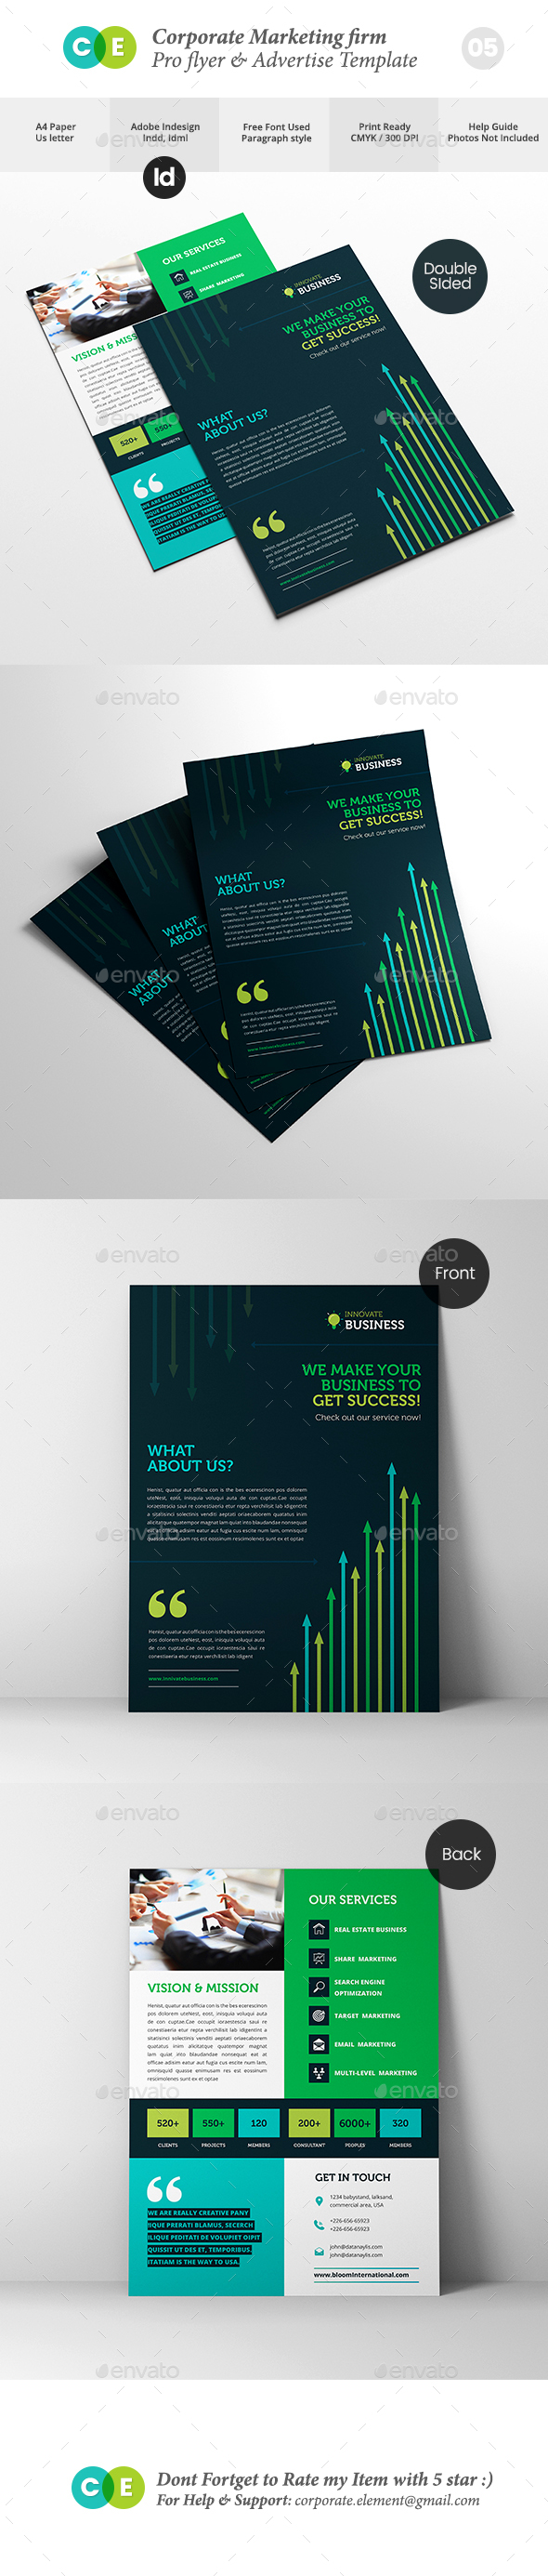 GraphicRiver Corporate Marketing Firm Pro Double Sided Flyer V05 20321606